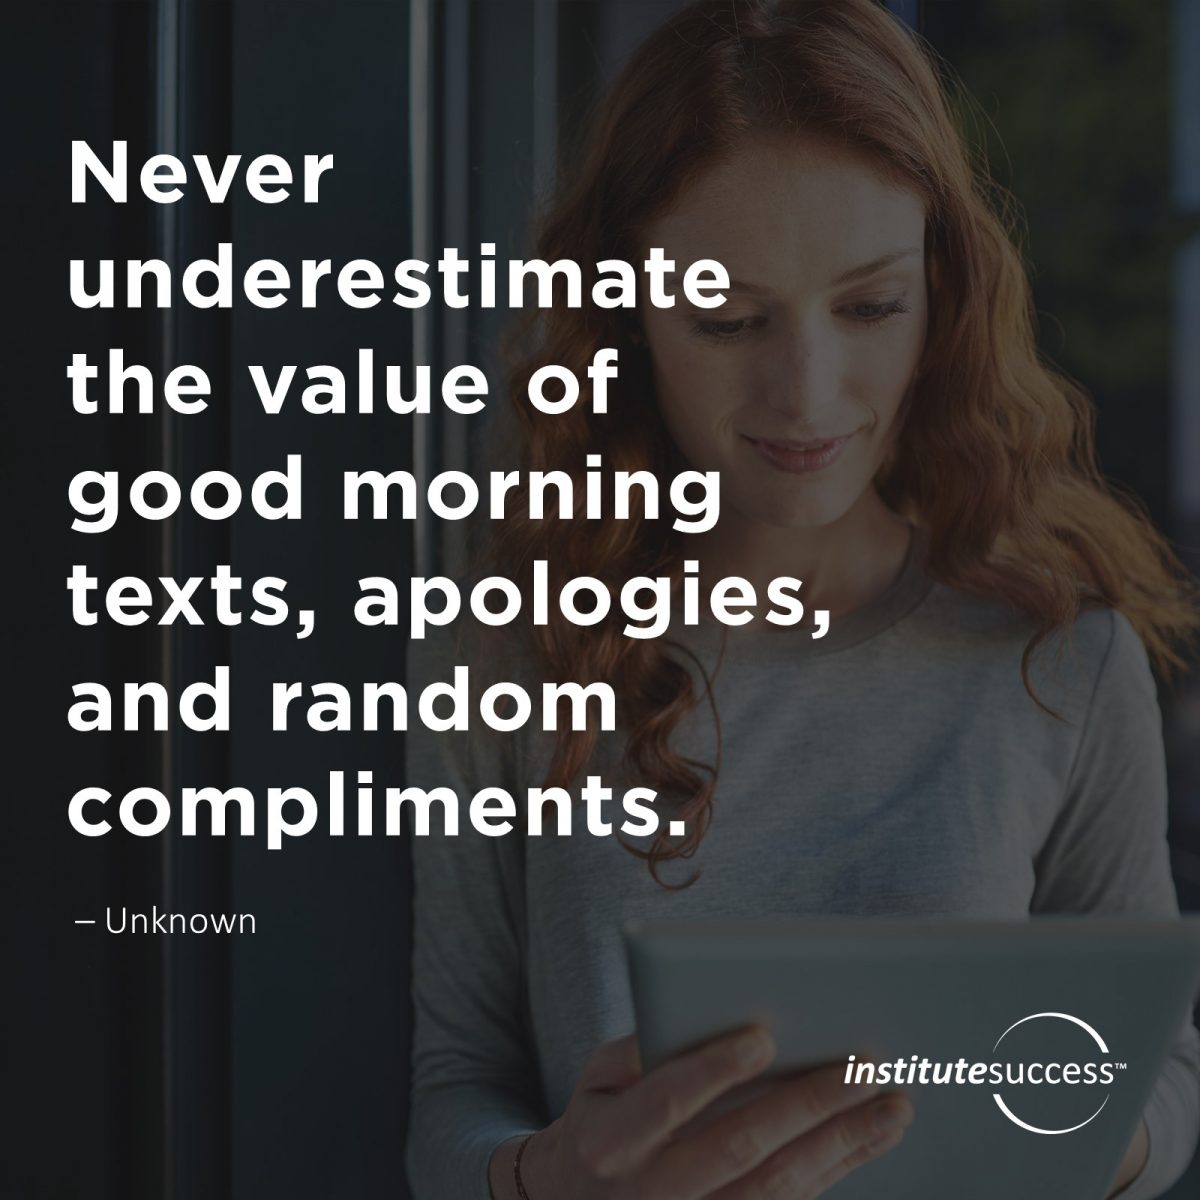 Never underestimate the value of good morning texts, apologies, and random compliments.	Unknown